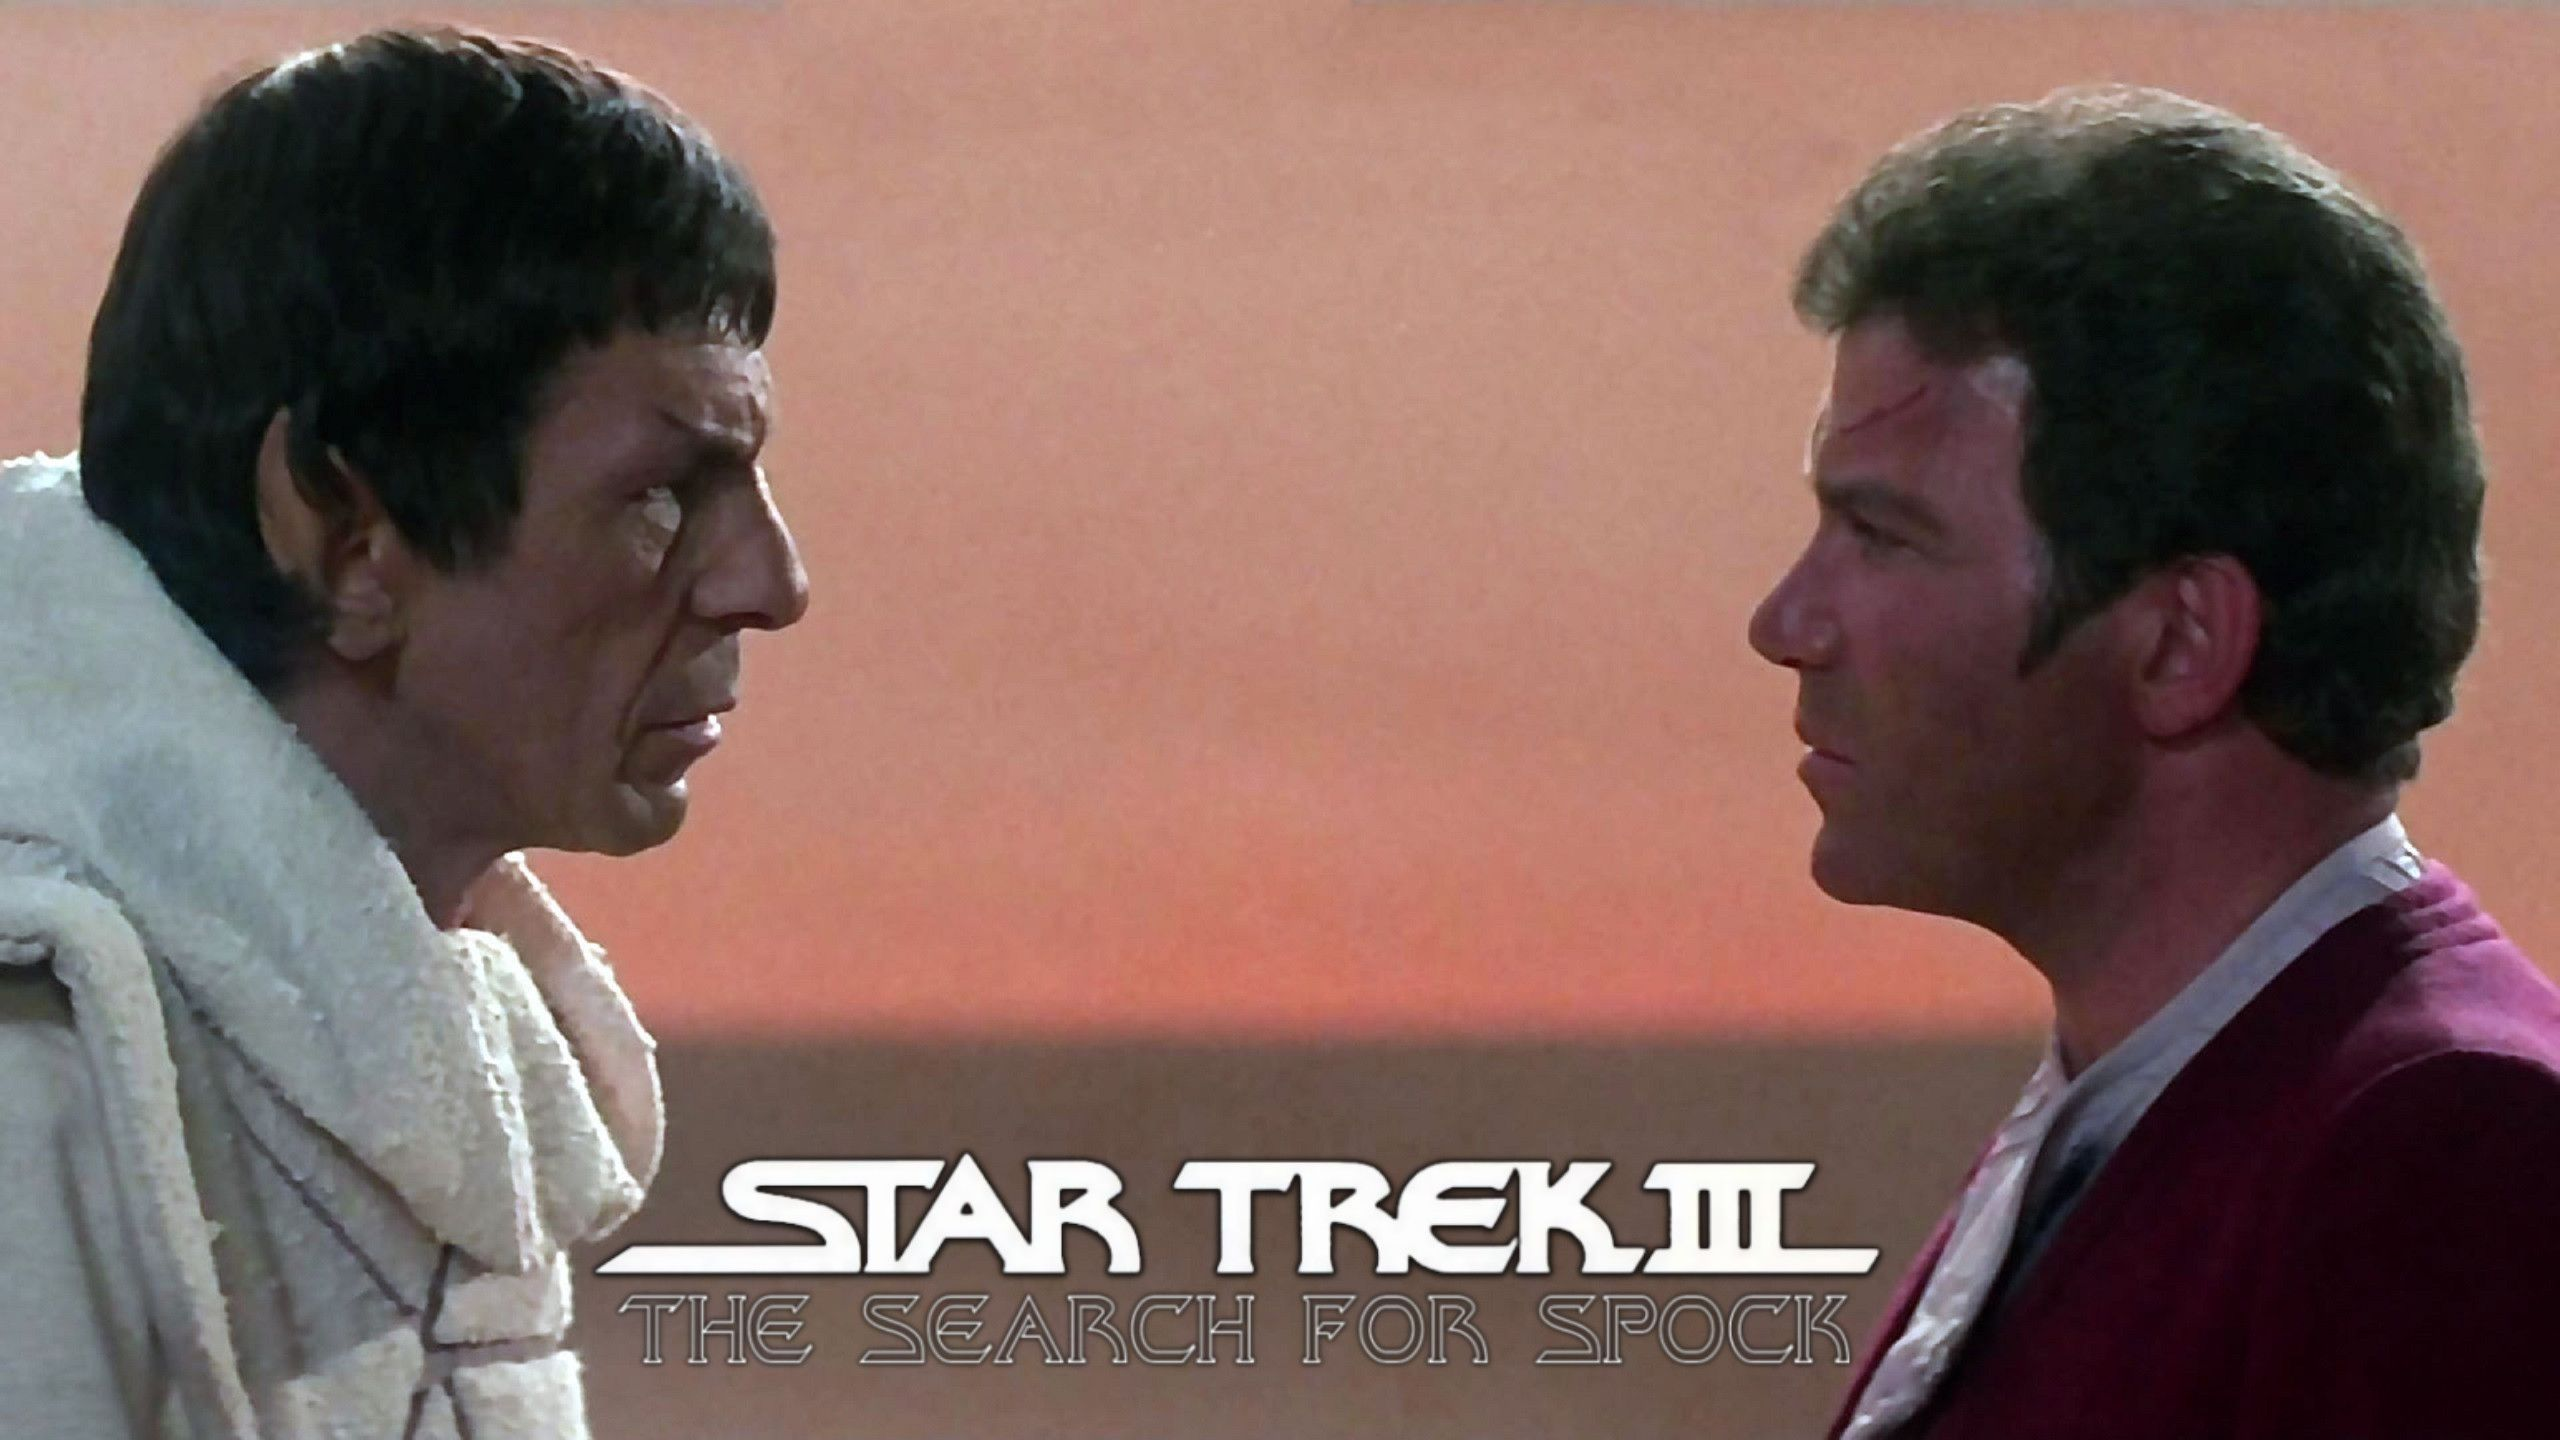 Star Trek 3 - alla Ricerca di Spock - Search for Spock (1984) friends banner